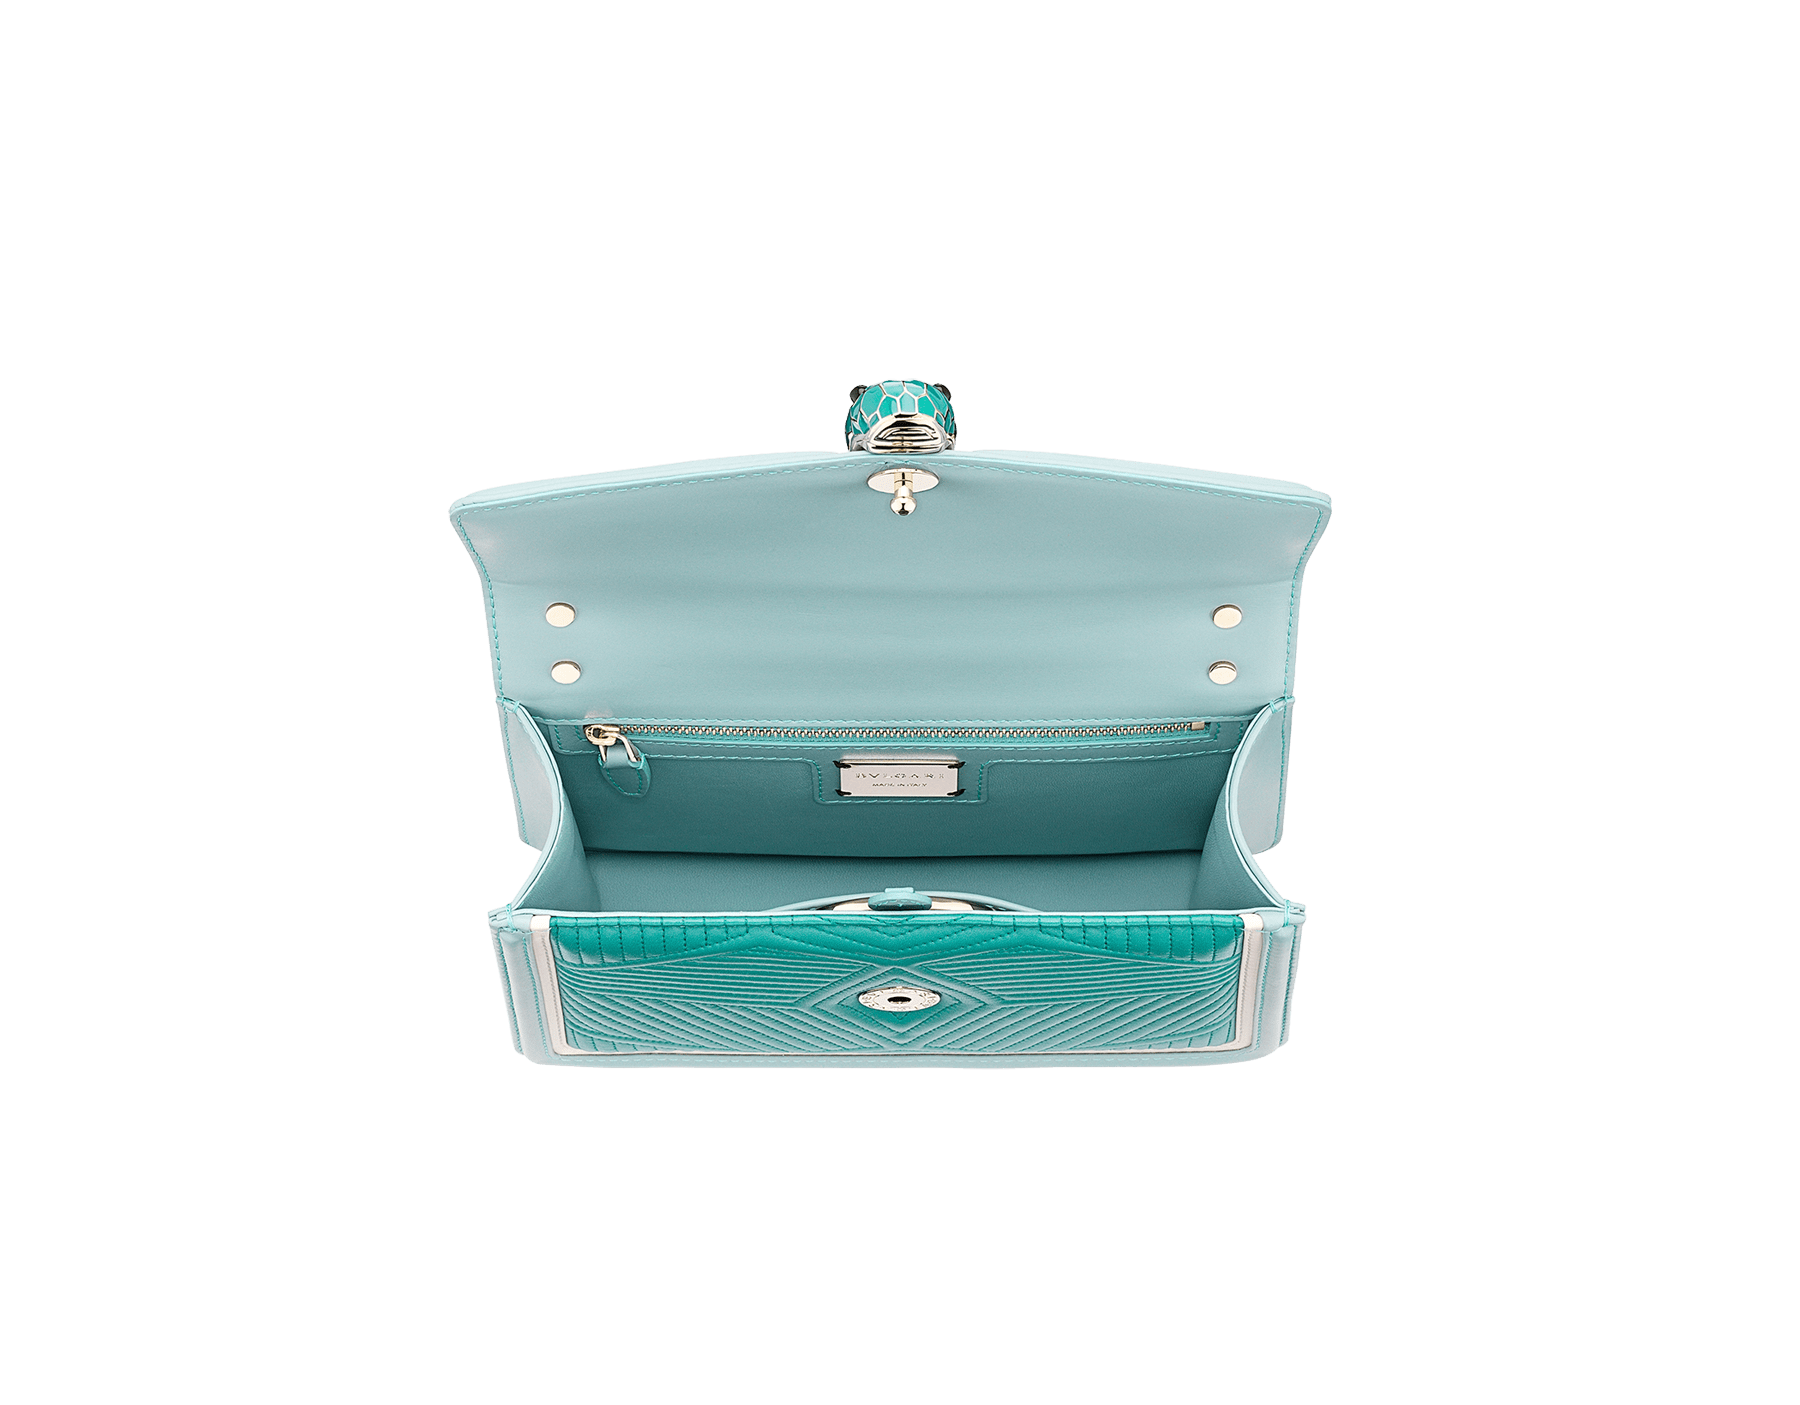 """Serpenti Diamond Blast"" shoulder bag in arctic jade quilted nappa leather and with glacier turquoise and white agate smooth calf leather frames. Iconic snakehead closure in light gold plated brass enriched with arctic jade and glacier turquoise enamel and black onyx eyes. 288824 image 4"